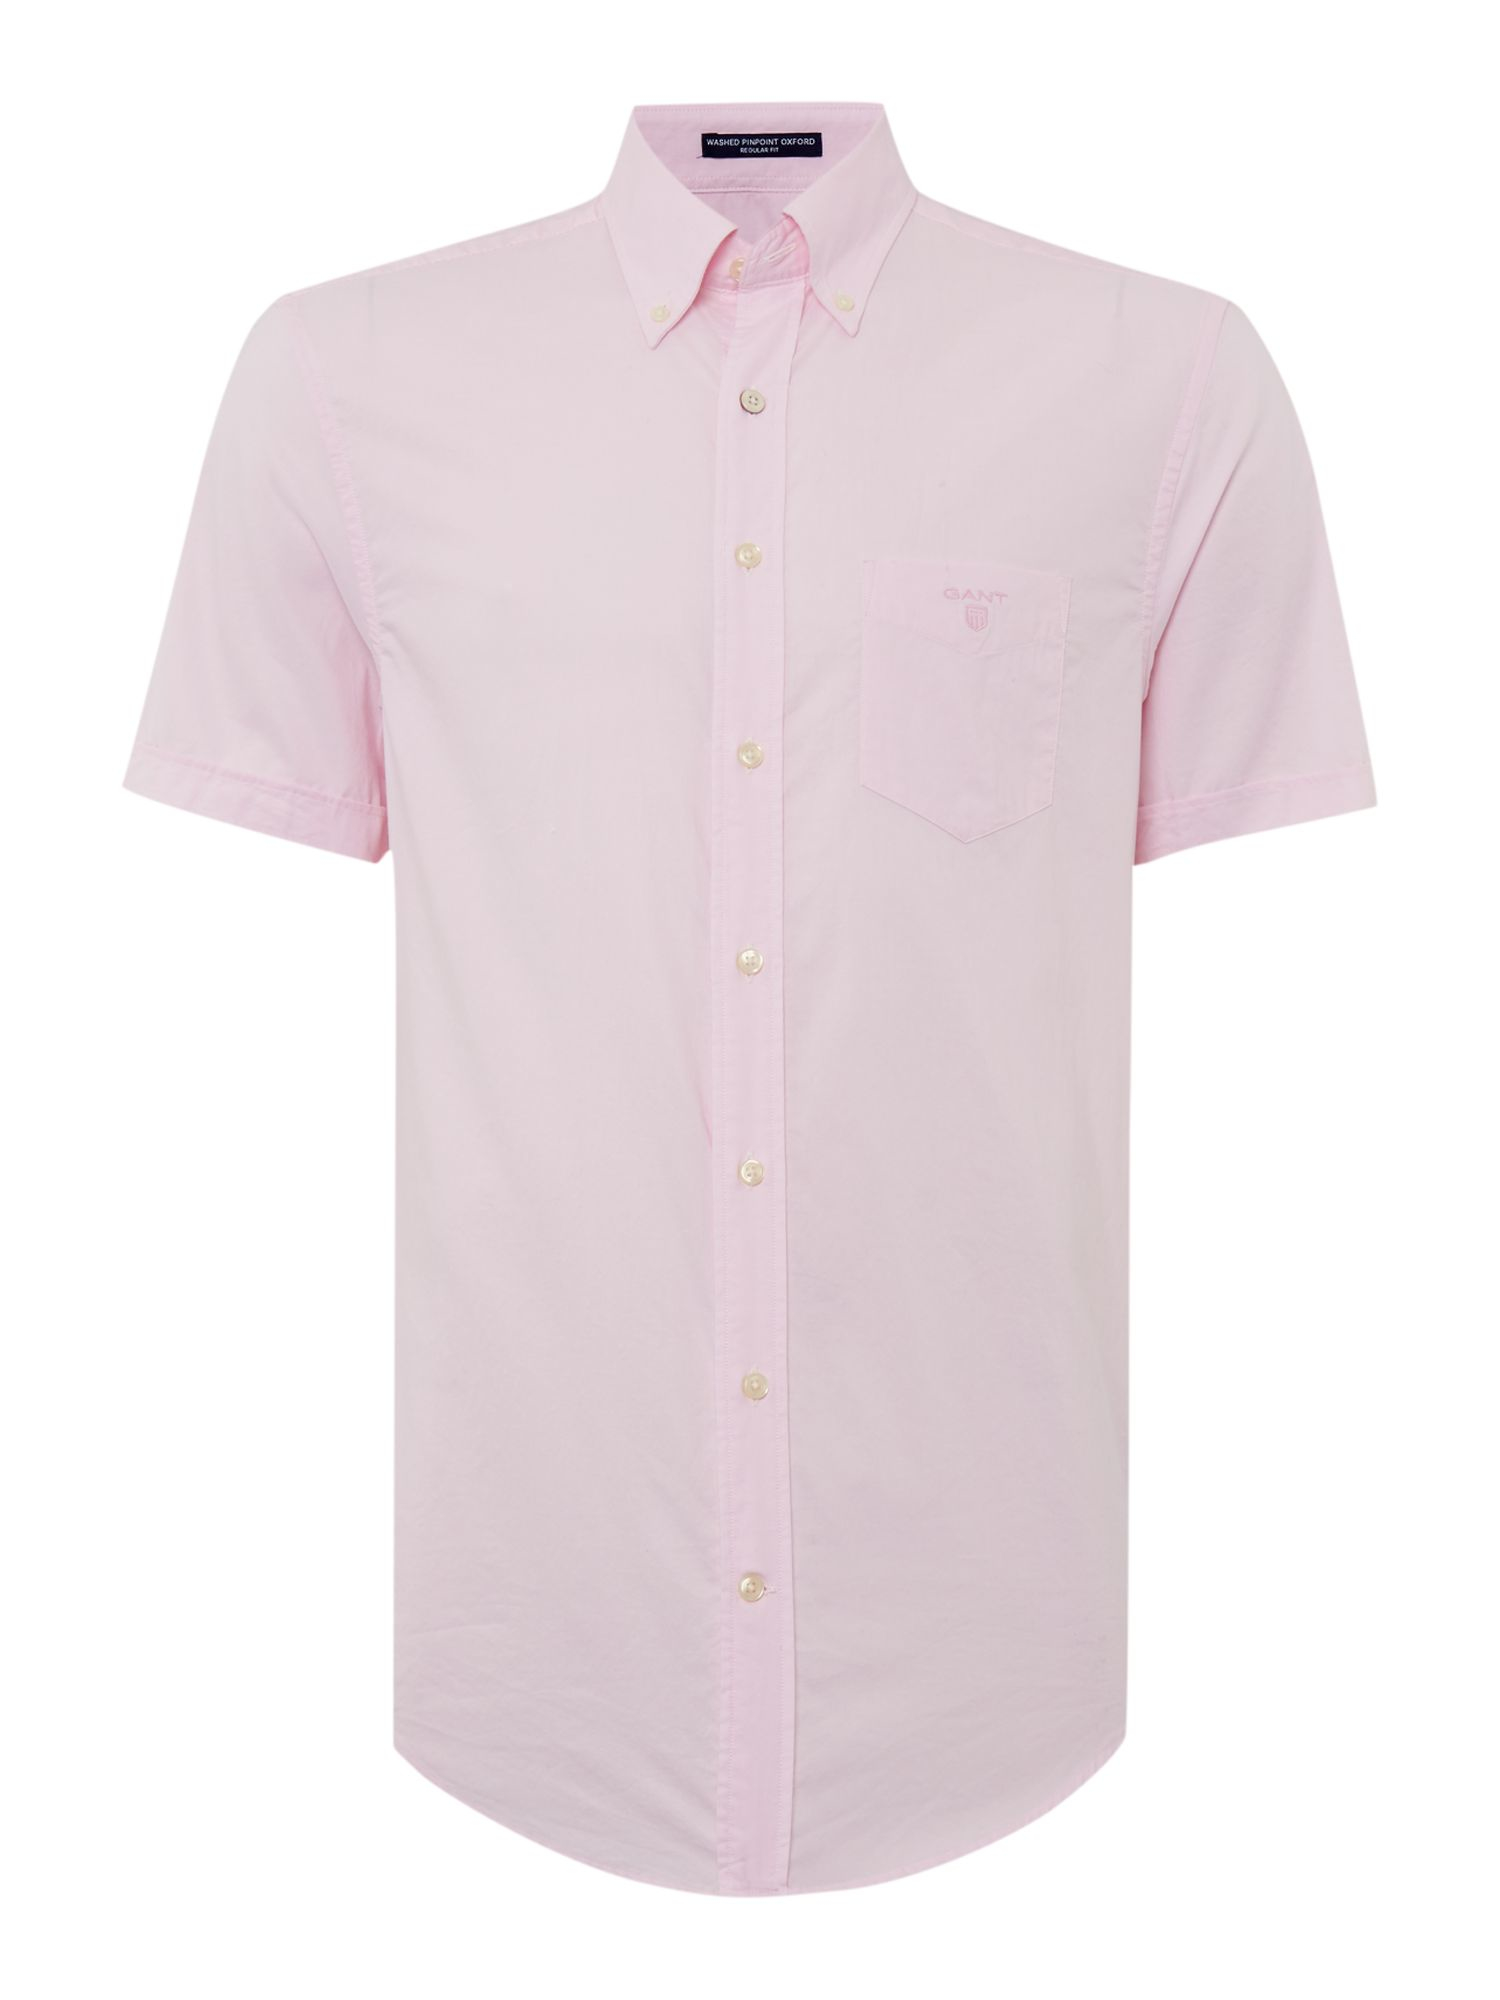 Gant washed pin point oxford short sleeve shirt in pink for Pink oxford shirt men